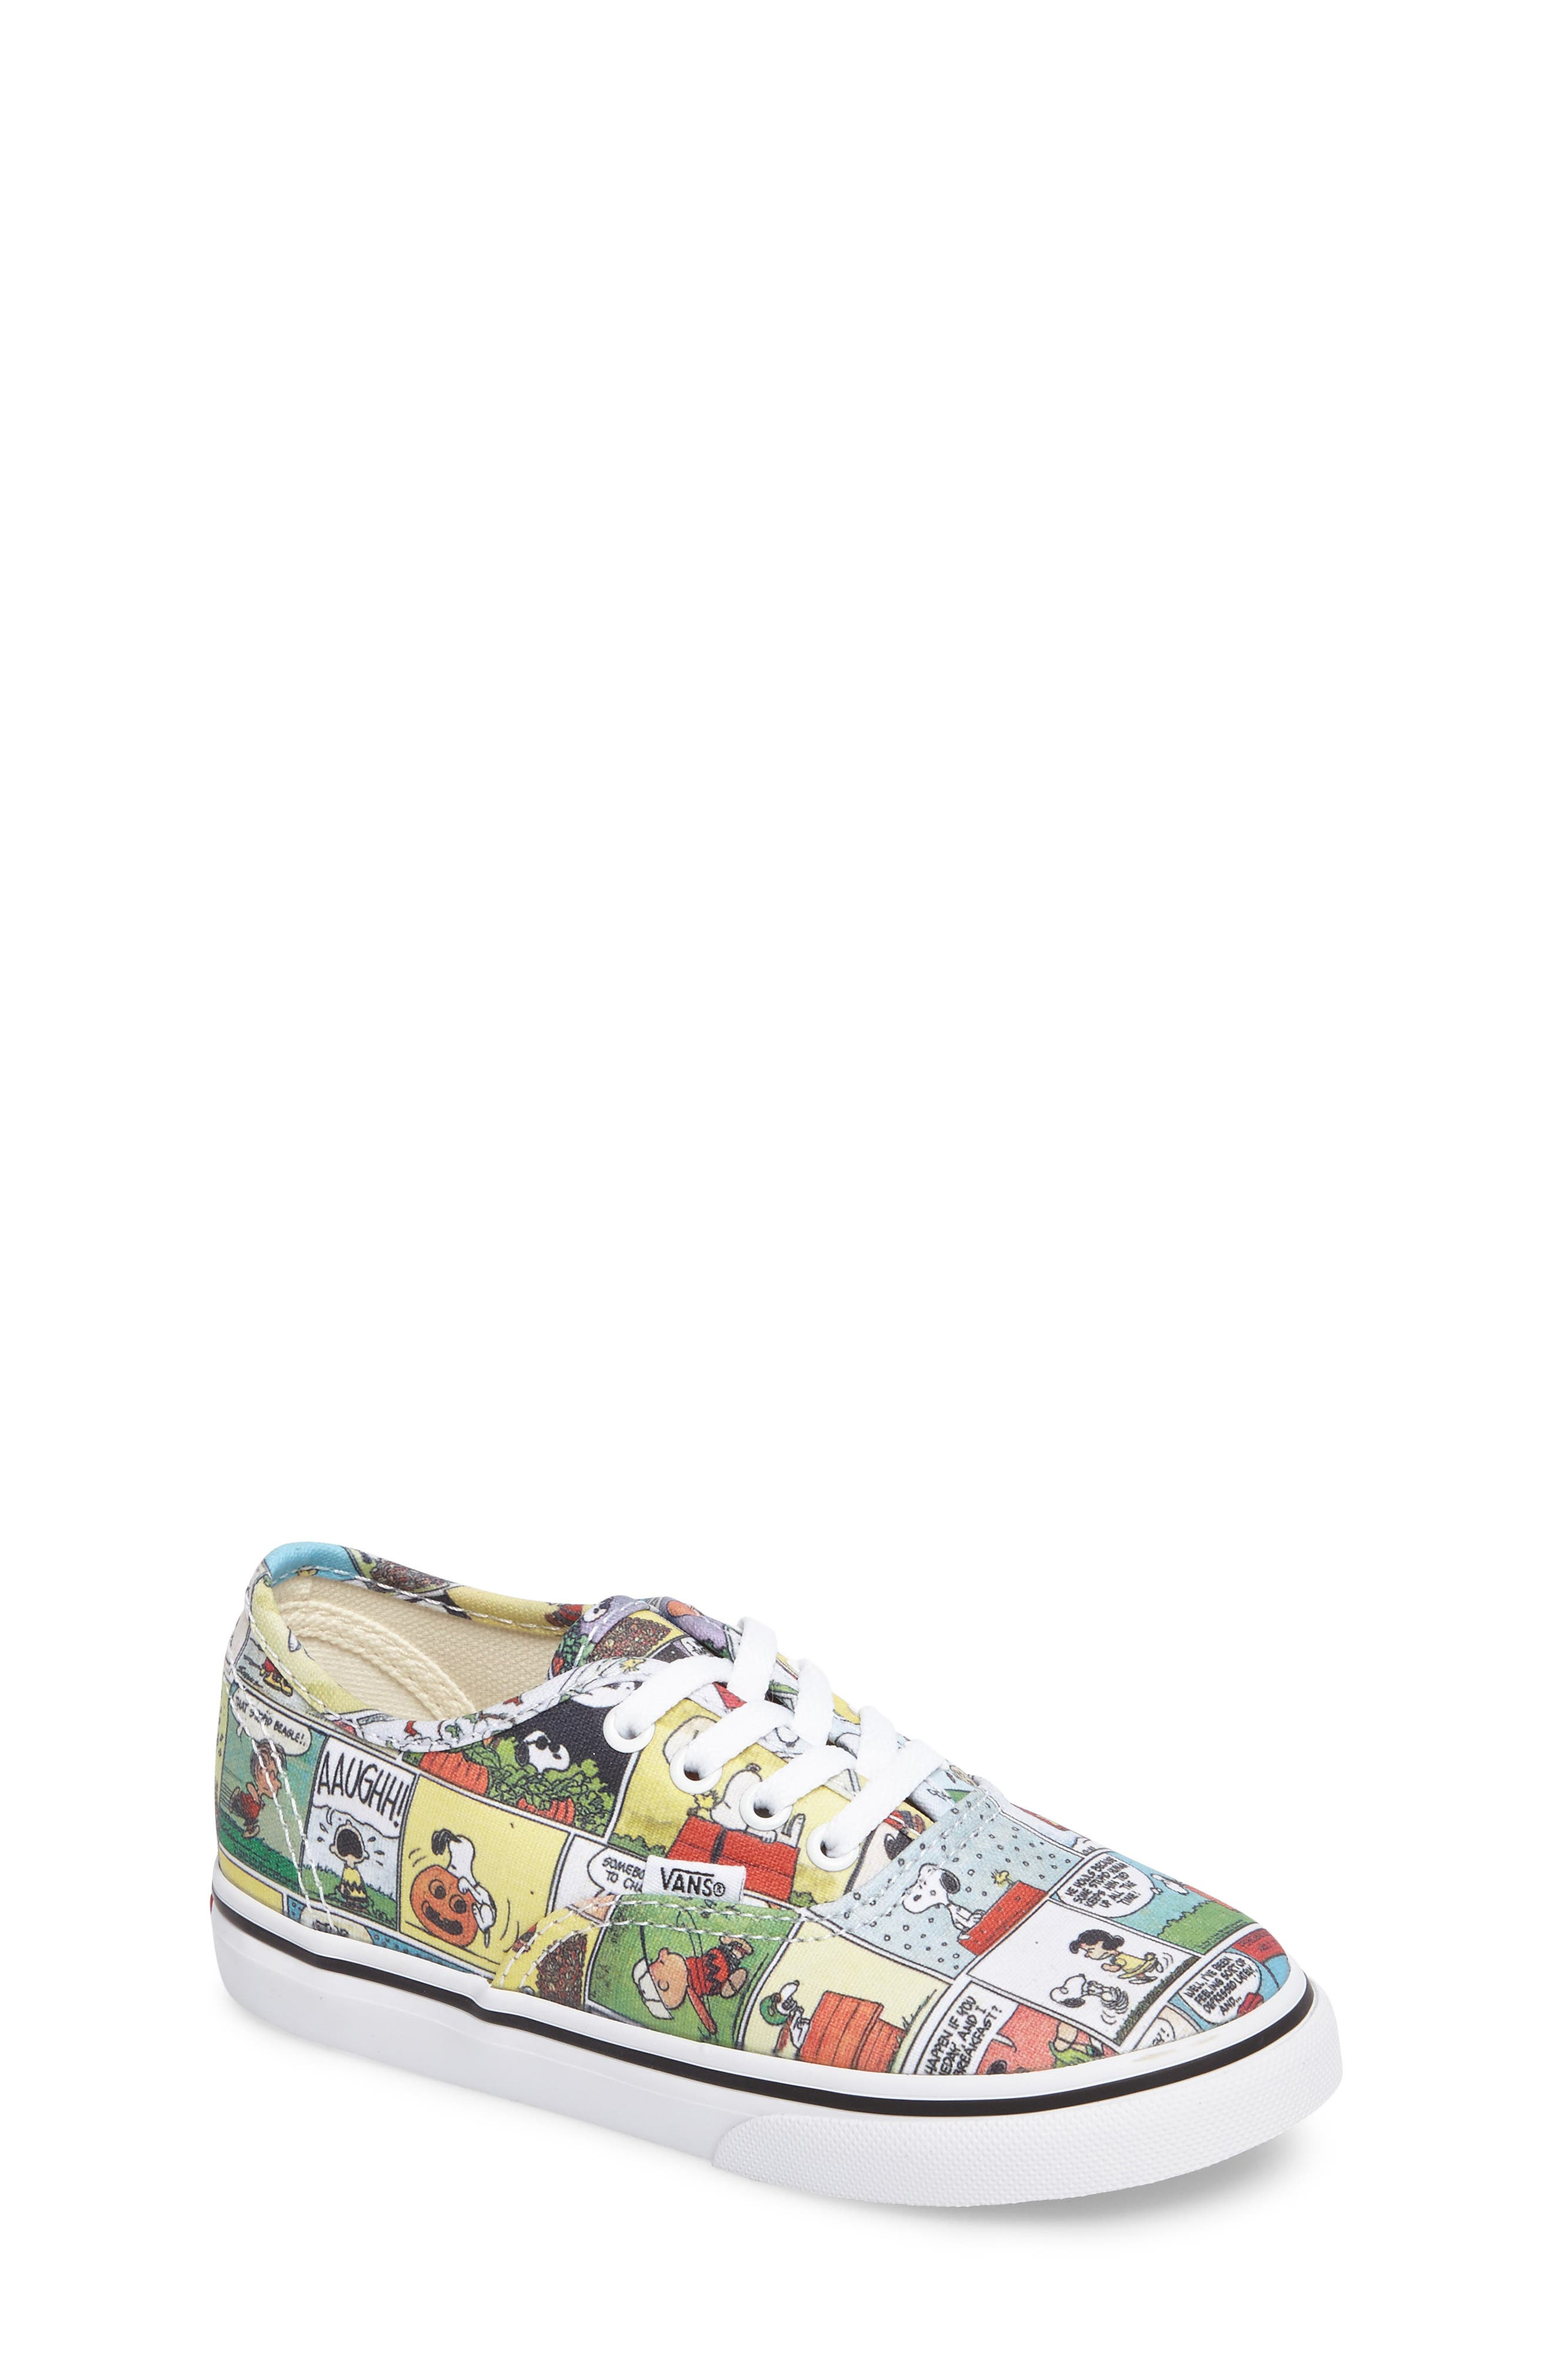 x Peanuts Authentic Low Top Sneaker,                         Main,                         color, 001